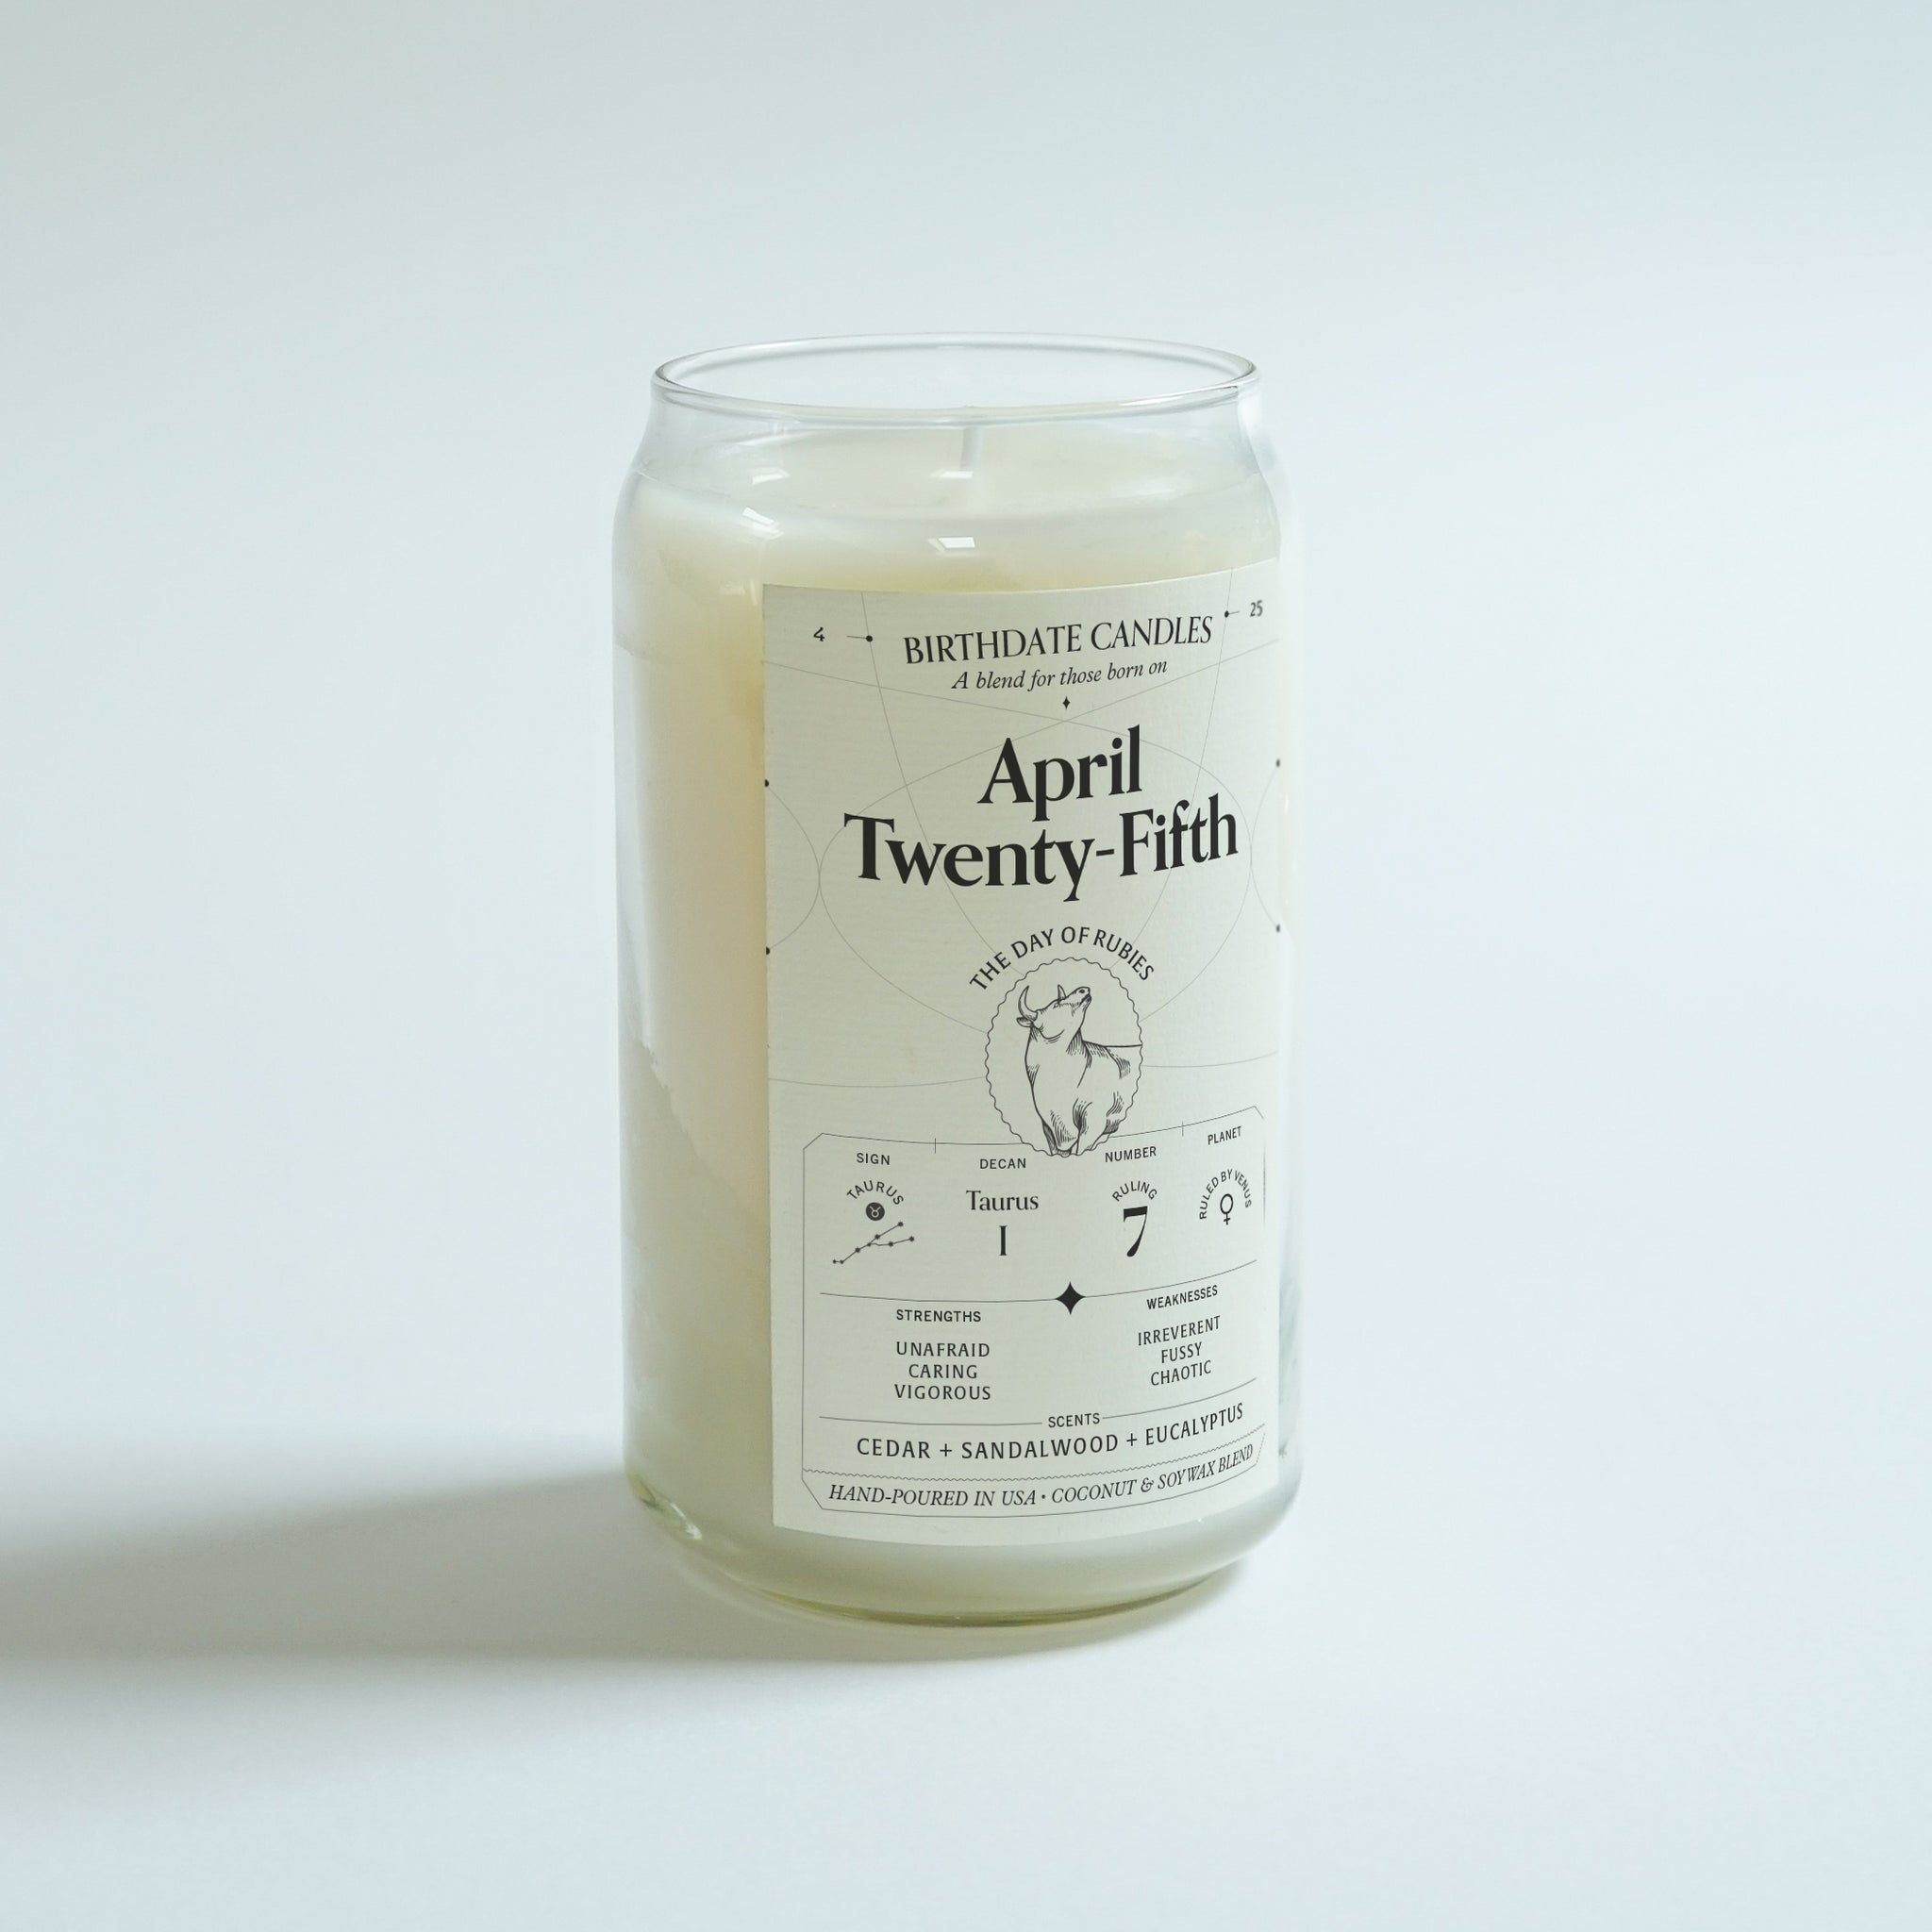 The April Twenty-Fifth Birthday Candle